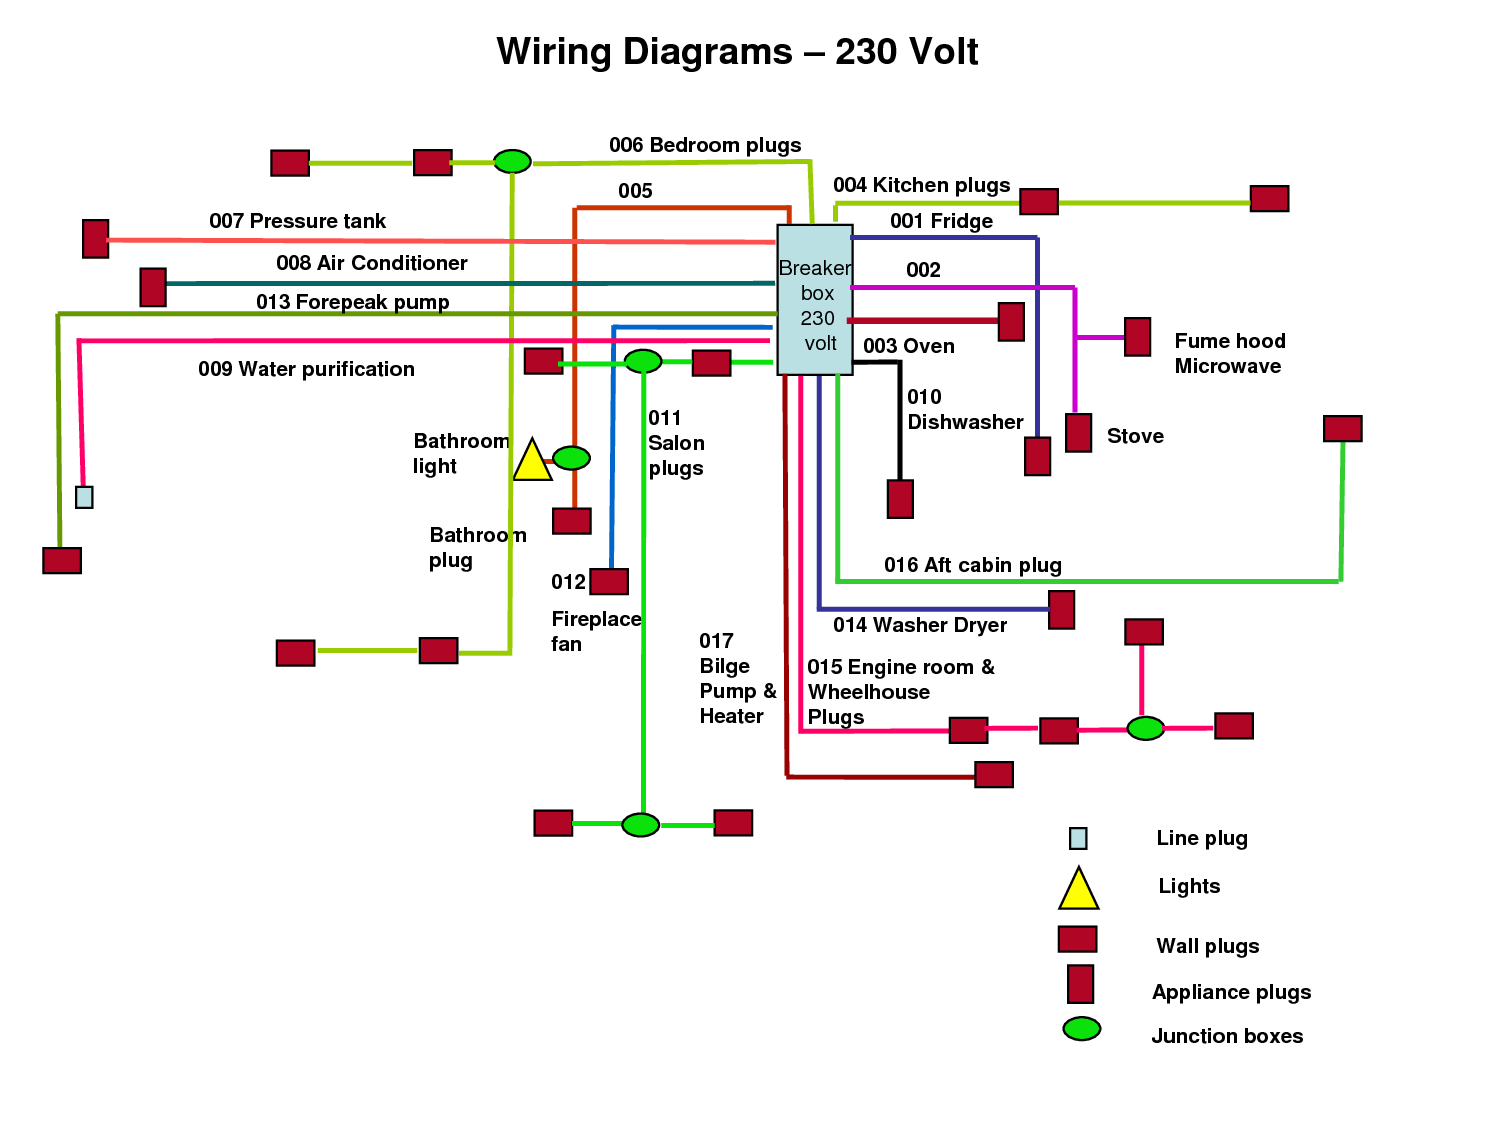 Electric Work     Wiring       Diagram     230    Volt